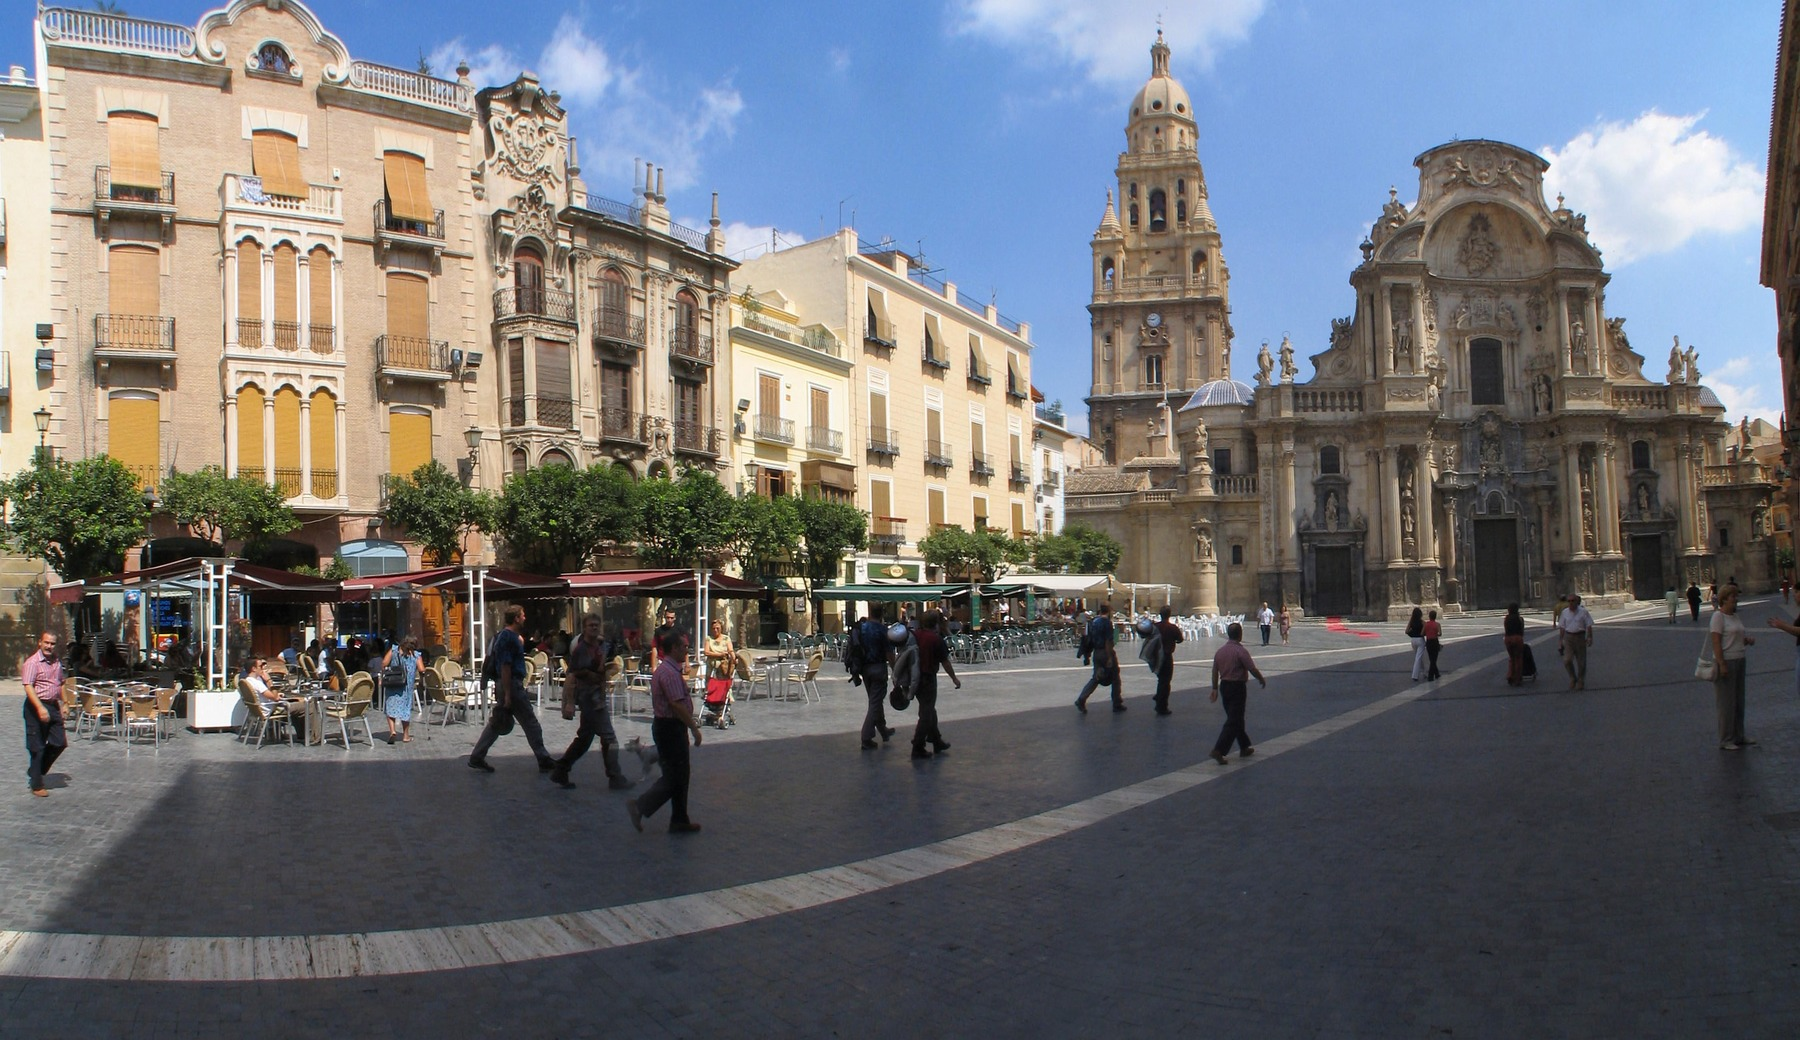 Cathedral Santa Maria in MurciaAfter 1238, Murcia occupied by the Moor ...